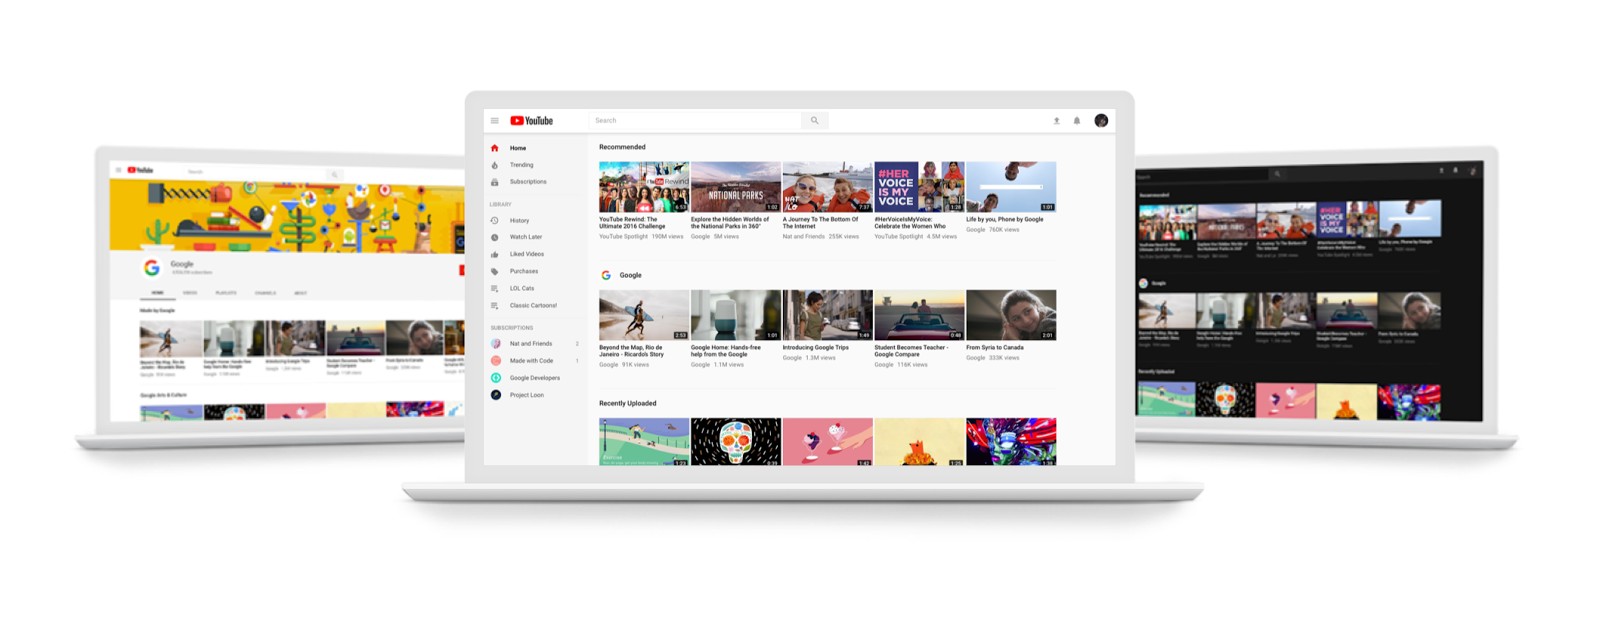 YouTube's big desktop redesign is now available to everyone